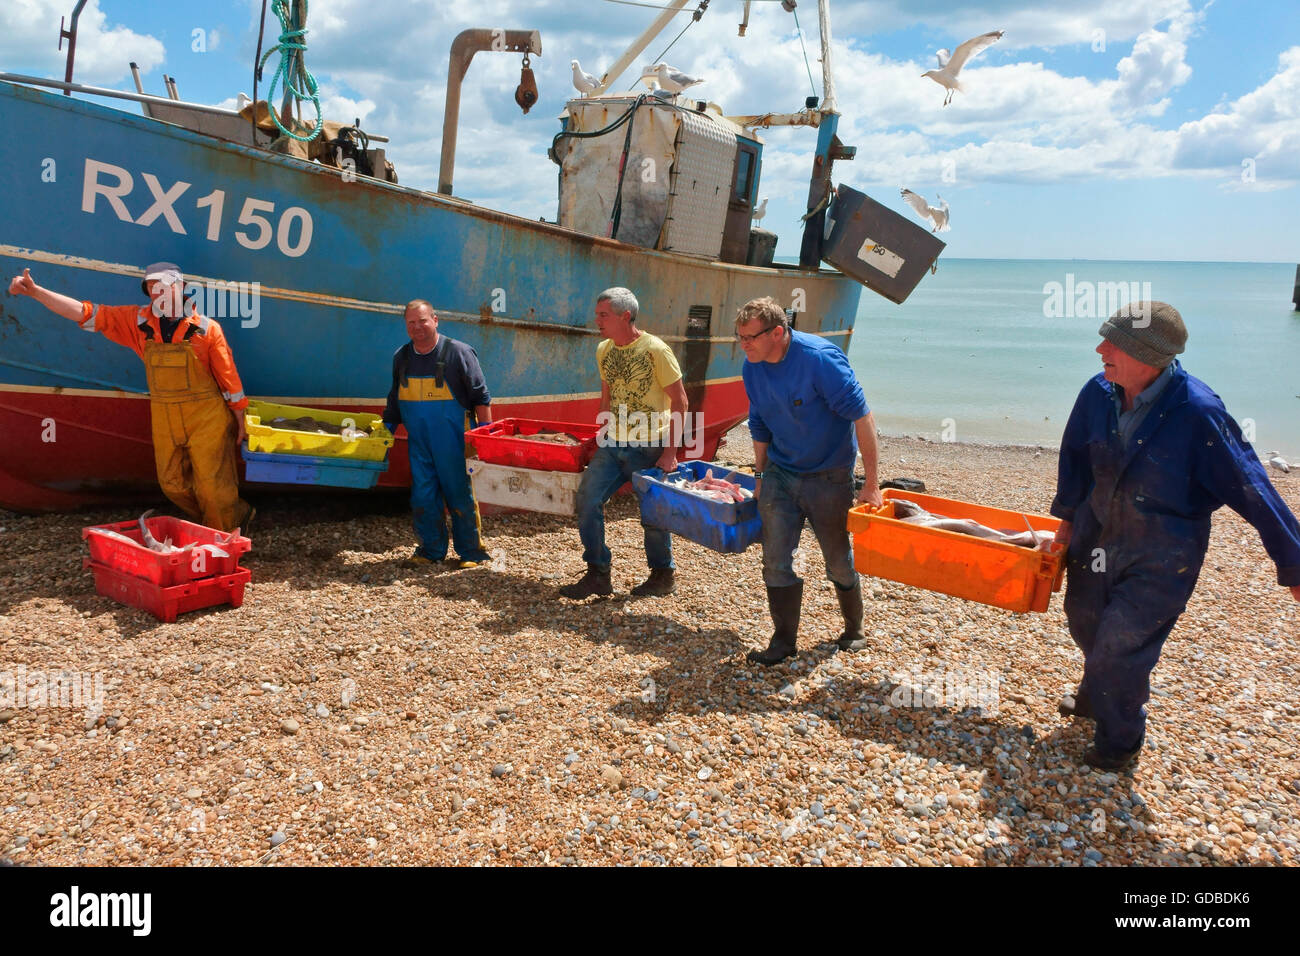 Hastings fishermen unloading catch of fish East Sussex England Britain UK - Stock Image